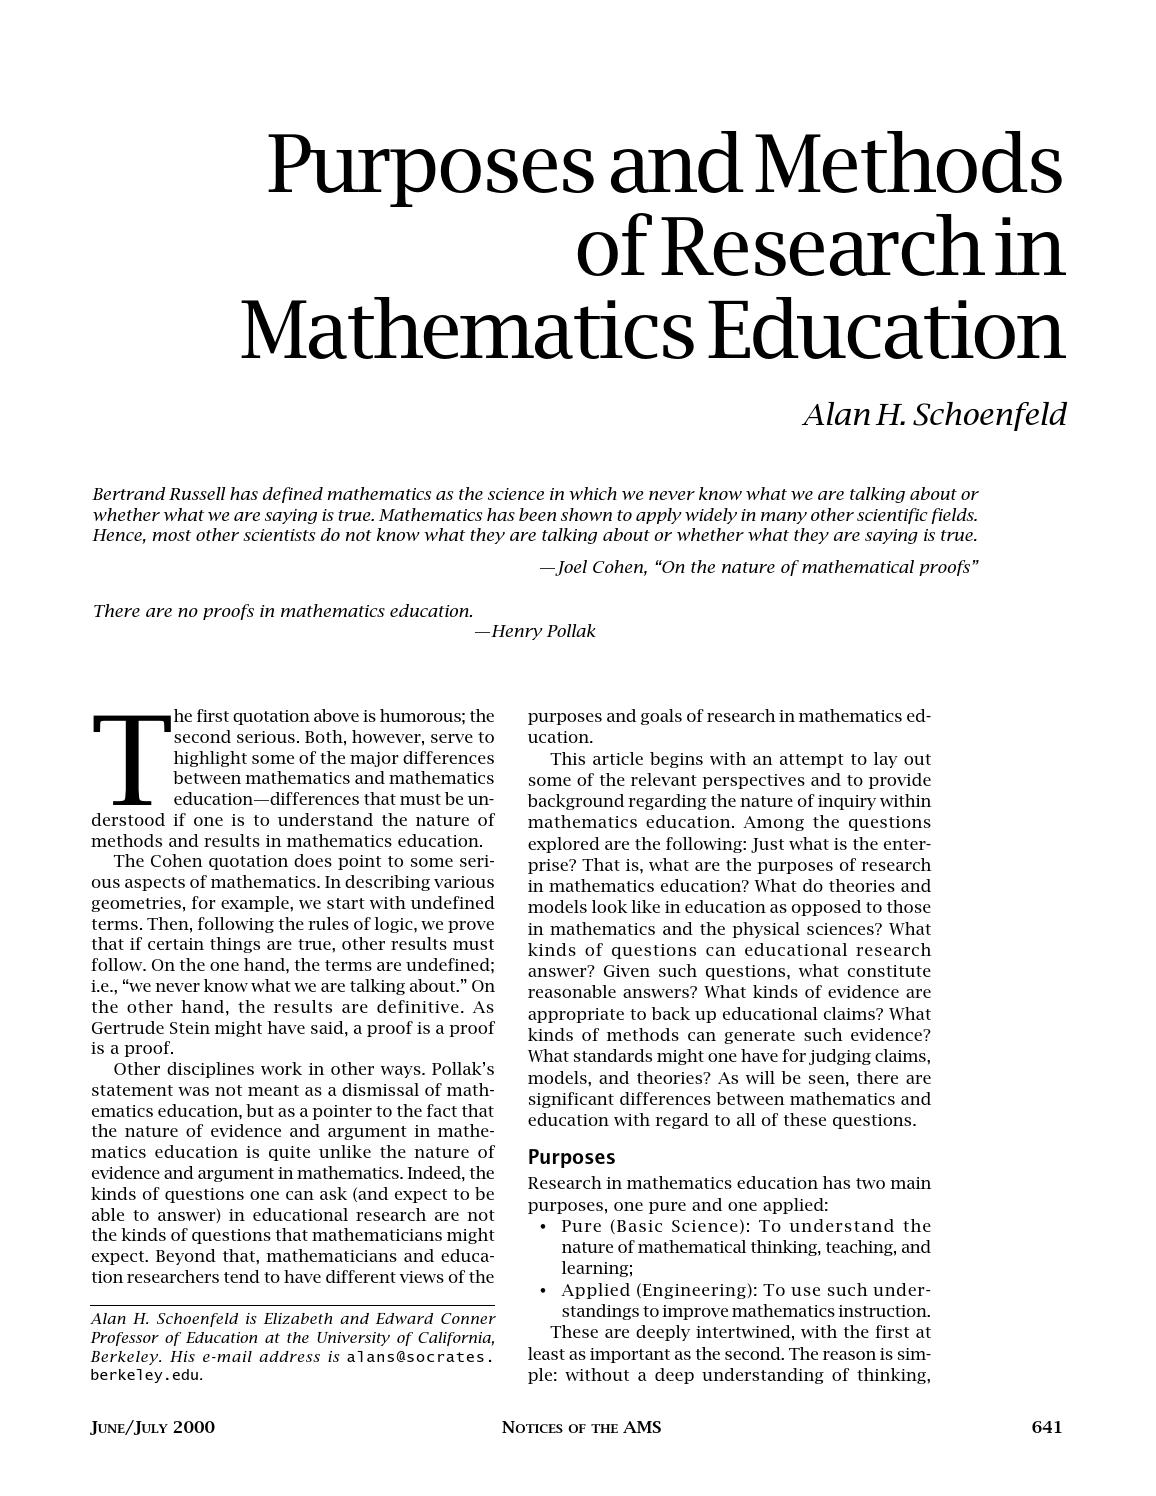 Purposes and methods inmath education by Heurística Educativa - issuu